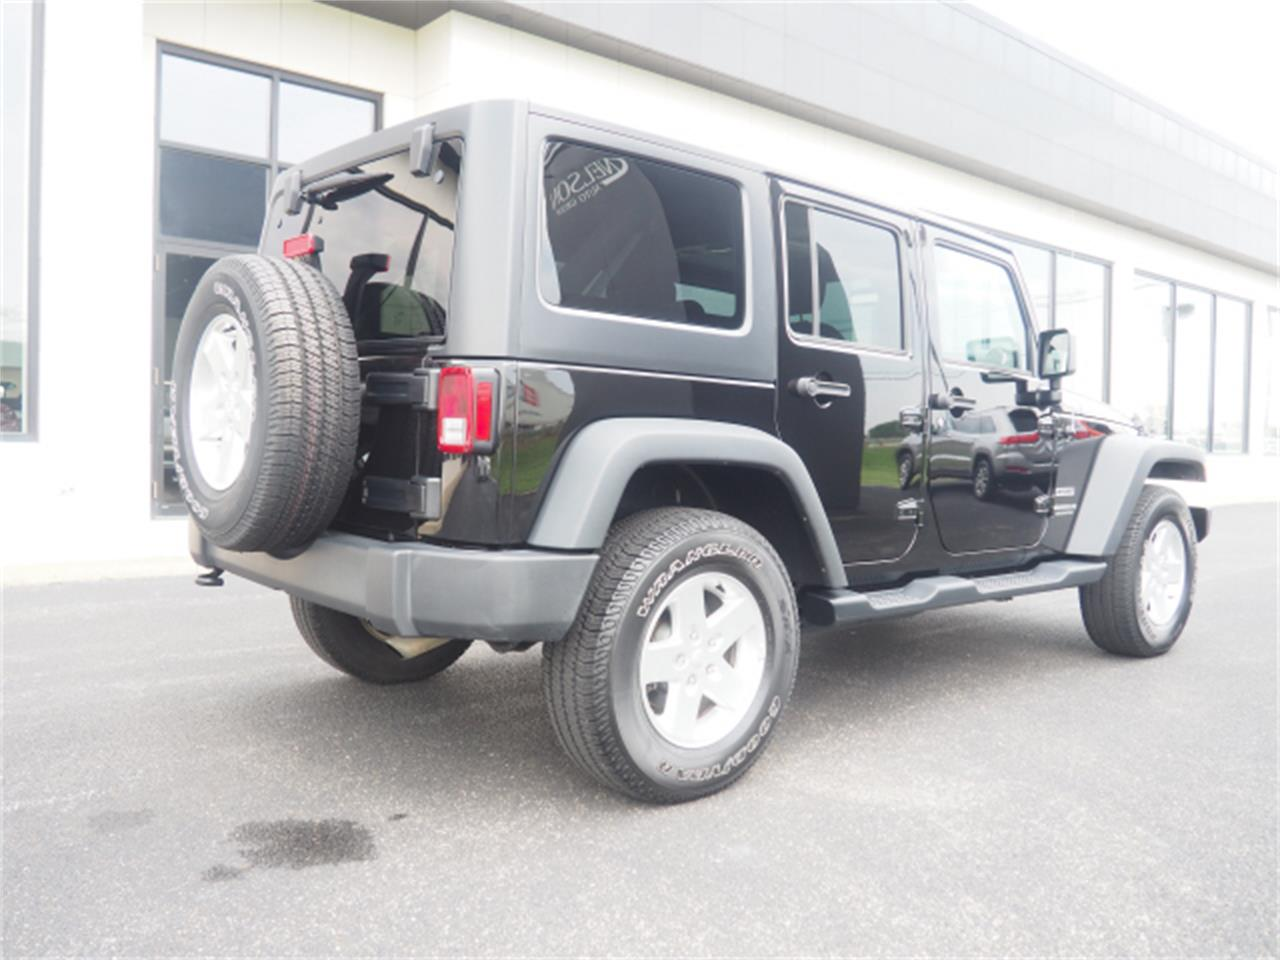 Large Picture of 2015 Jeep Wrangler located in Ohio - $27,999.00 - PPKT